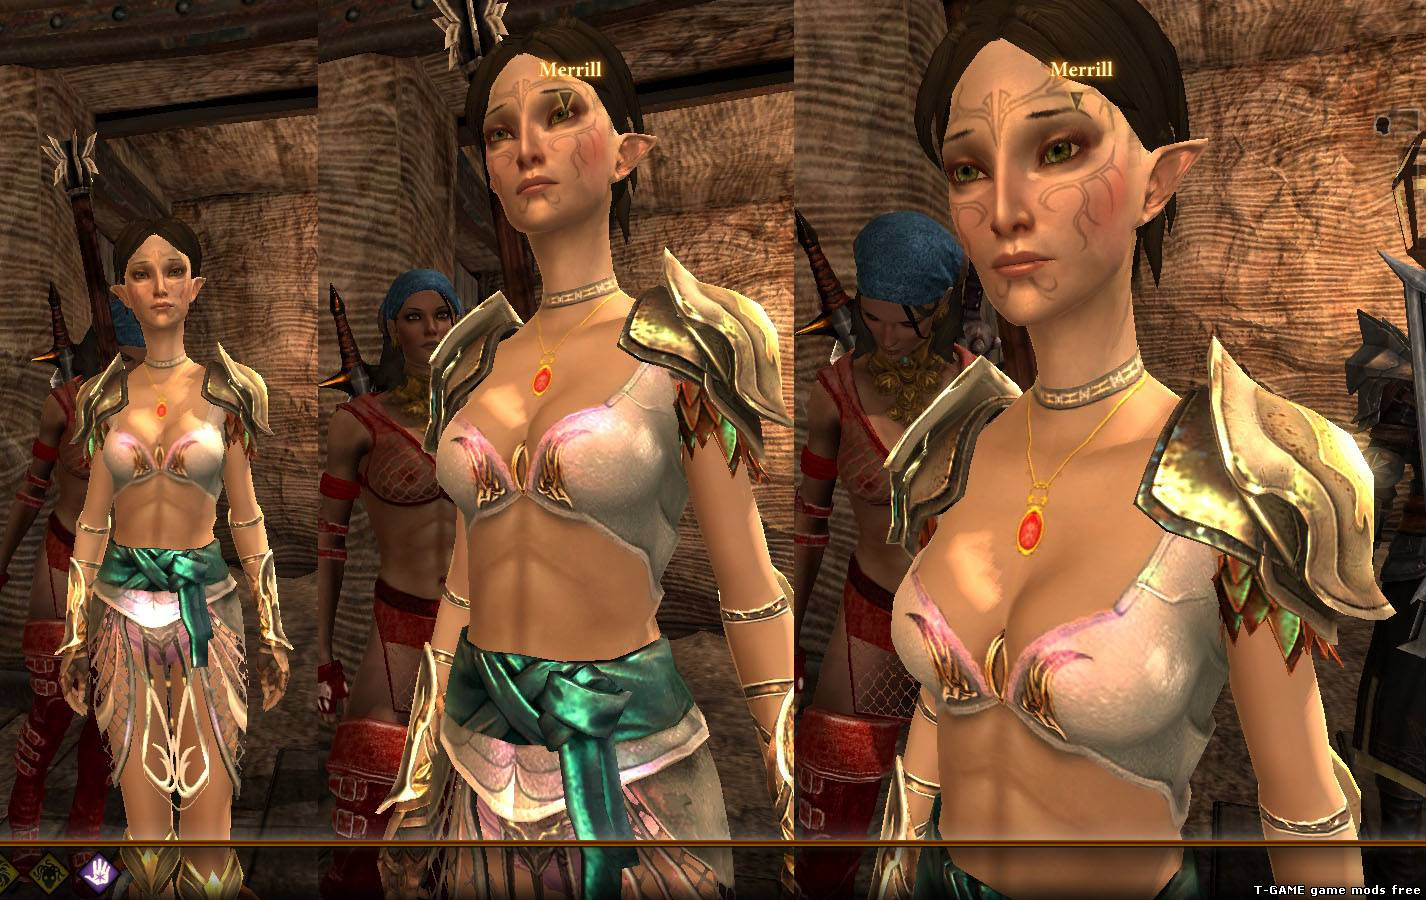 Merrill dragon age nude mod xxx private pussy